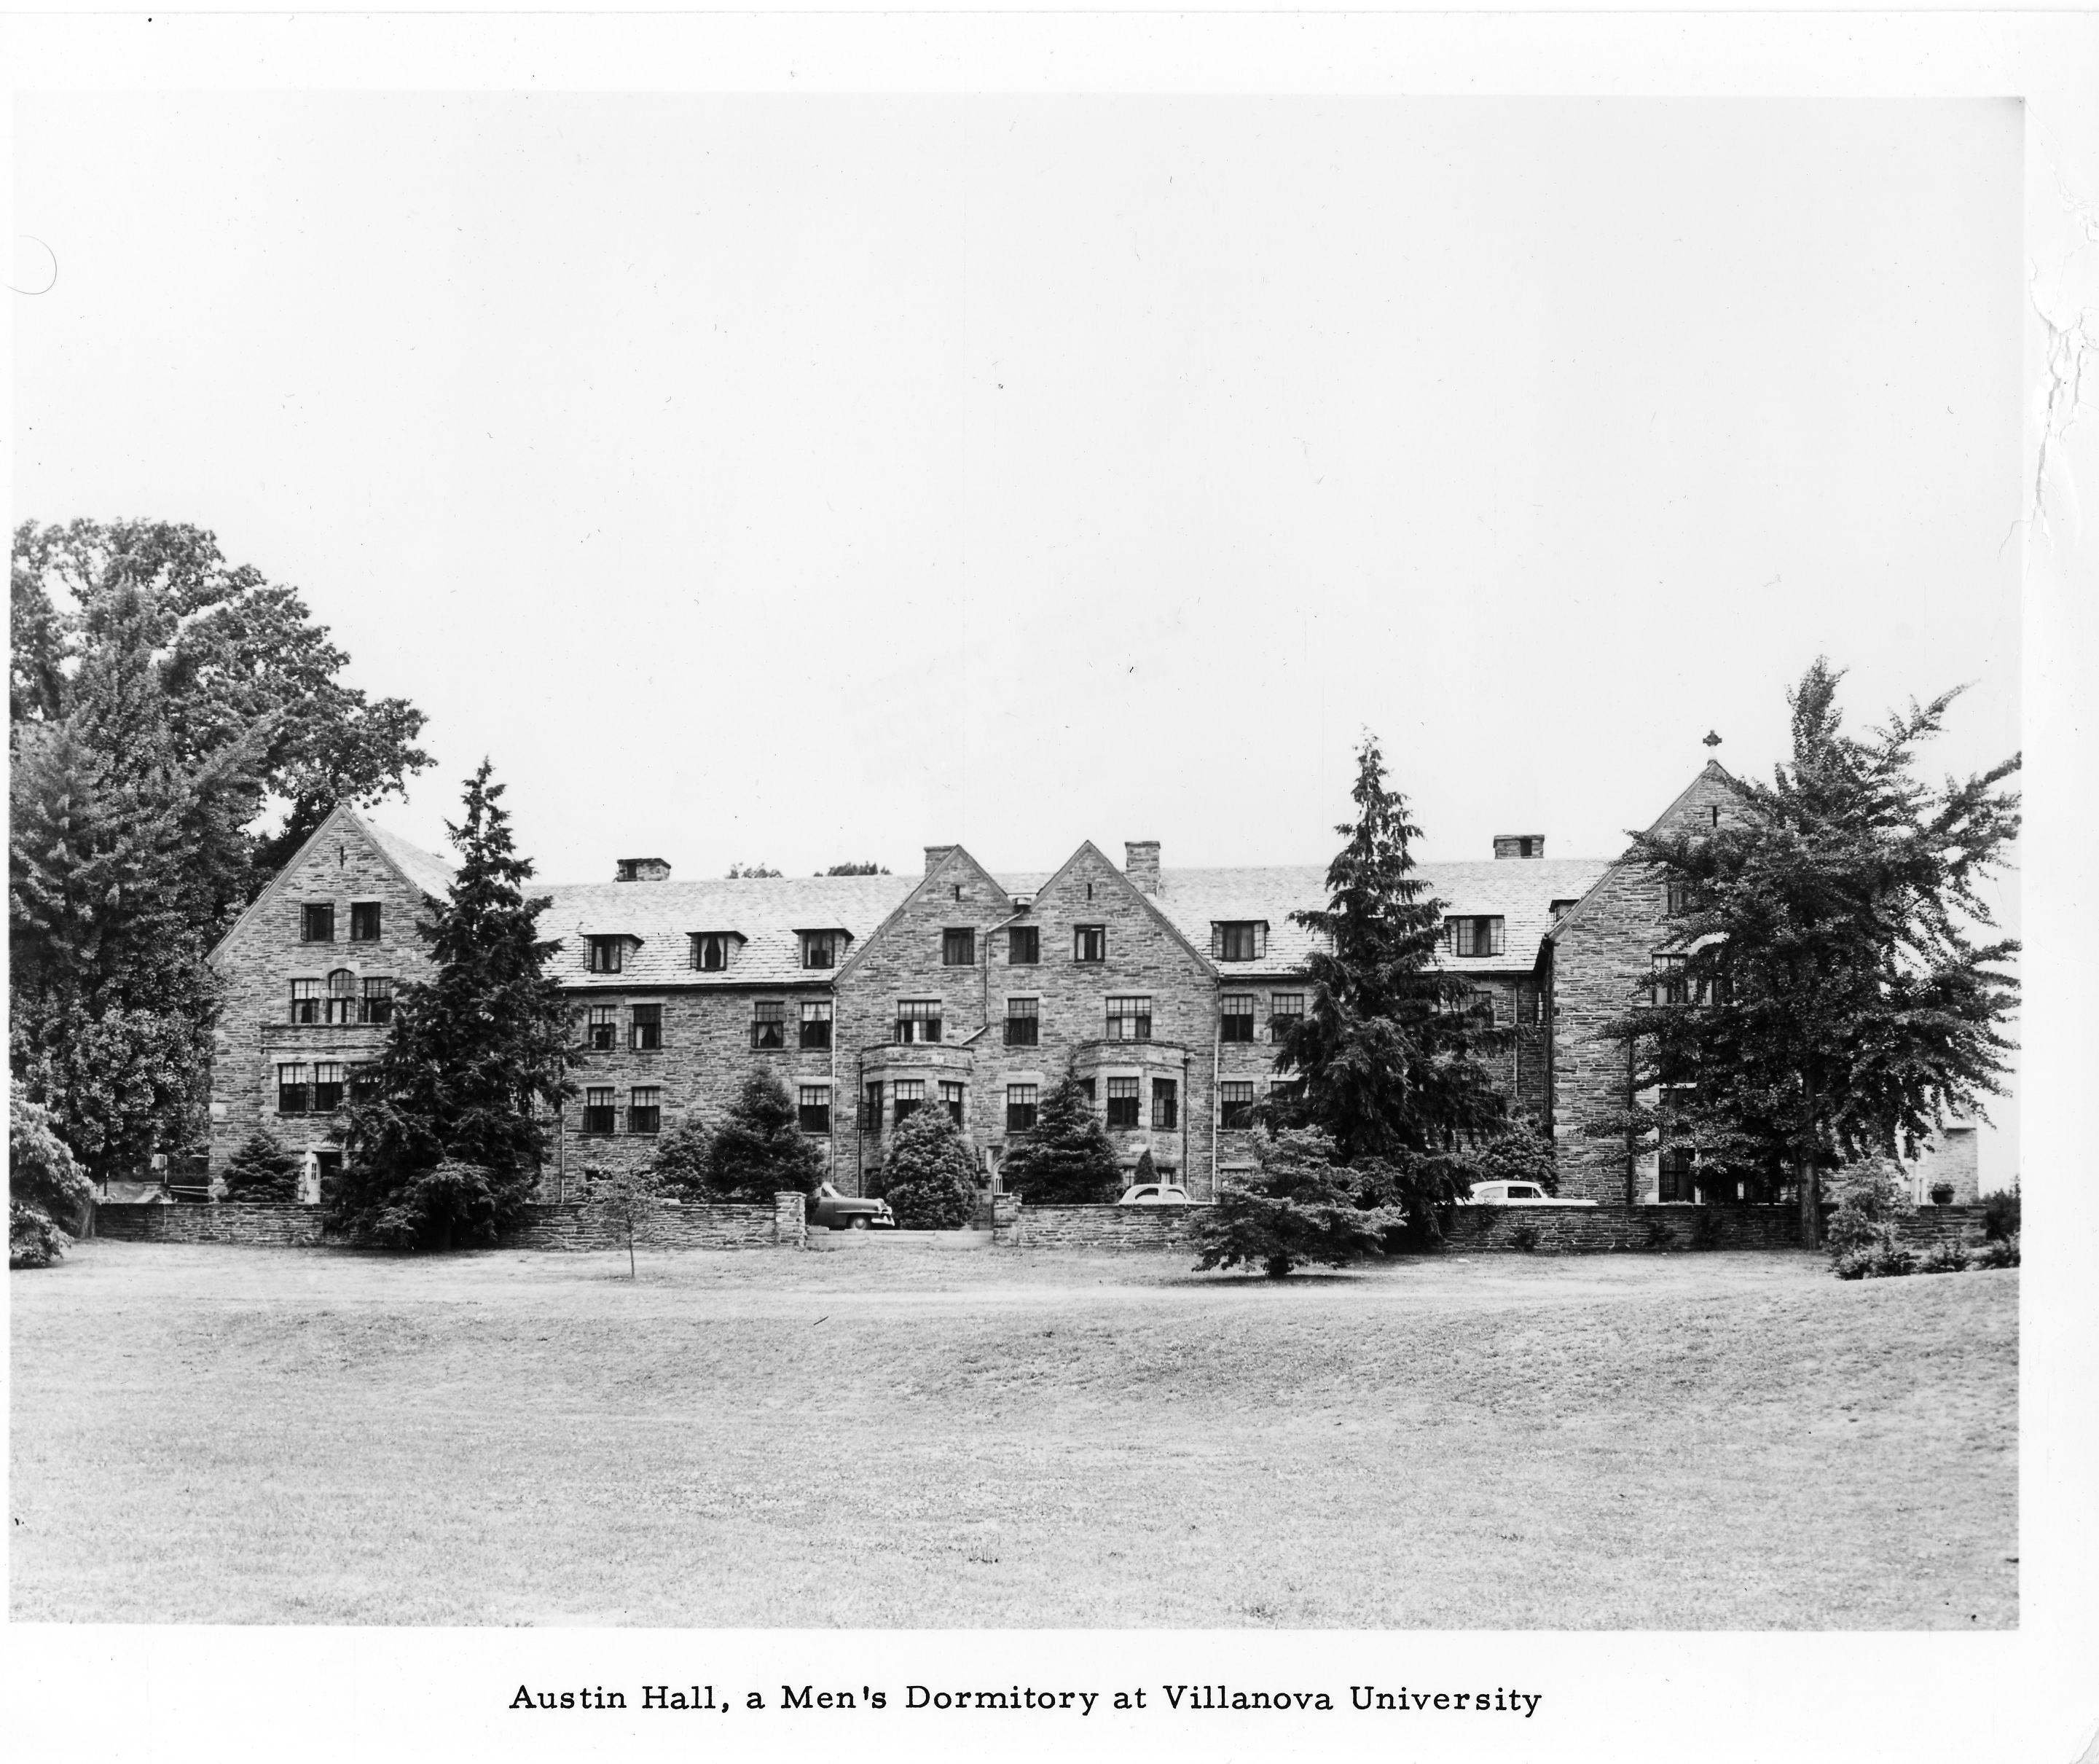 Austin Hall, completed in 1924